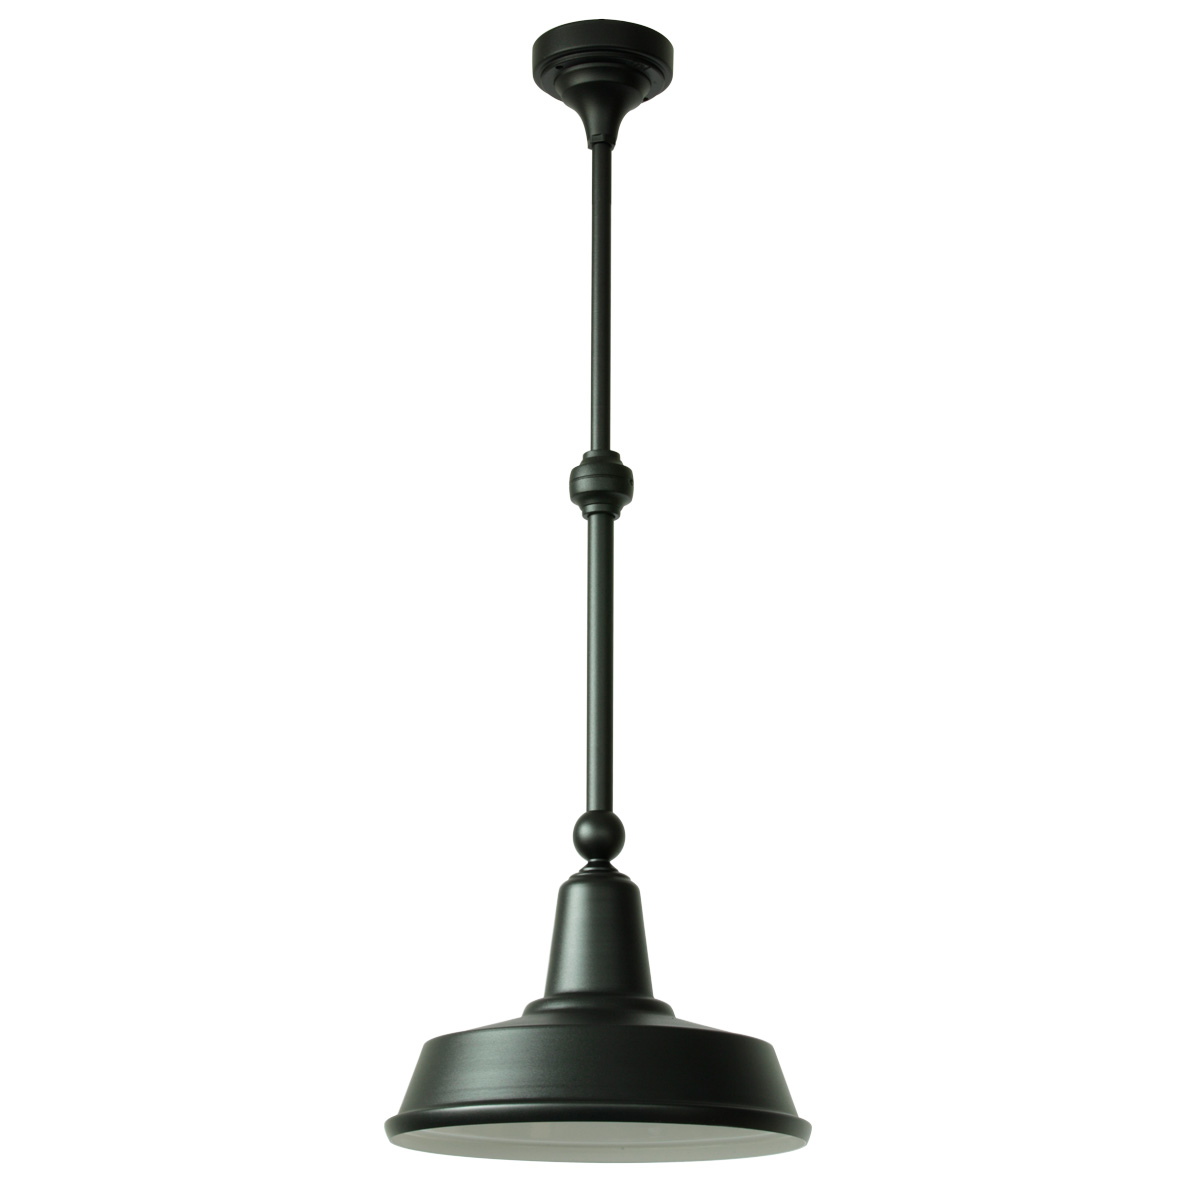 Deckenlampe Industrial Industrial Style Ceiling Light For Outdoors With Rod Suspension